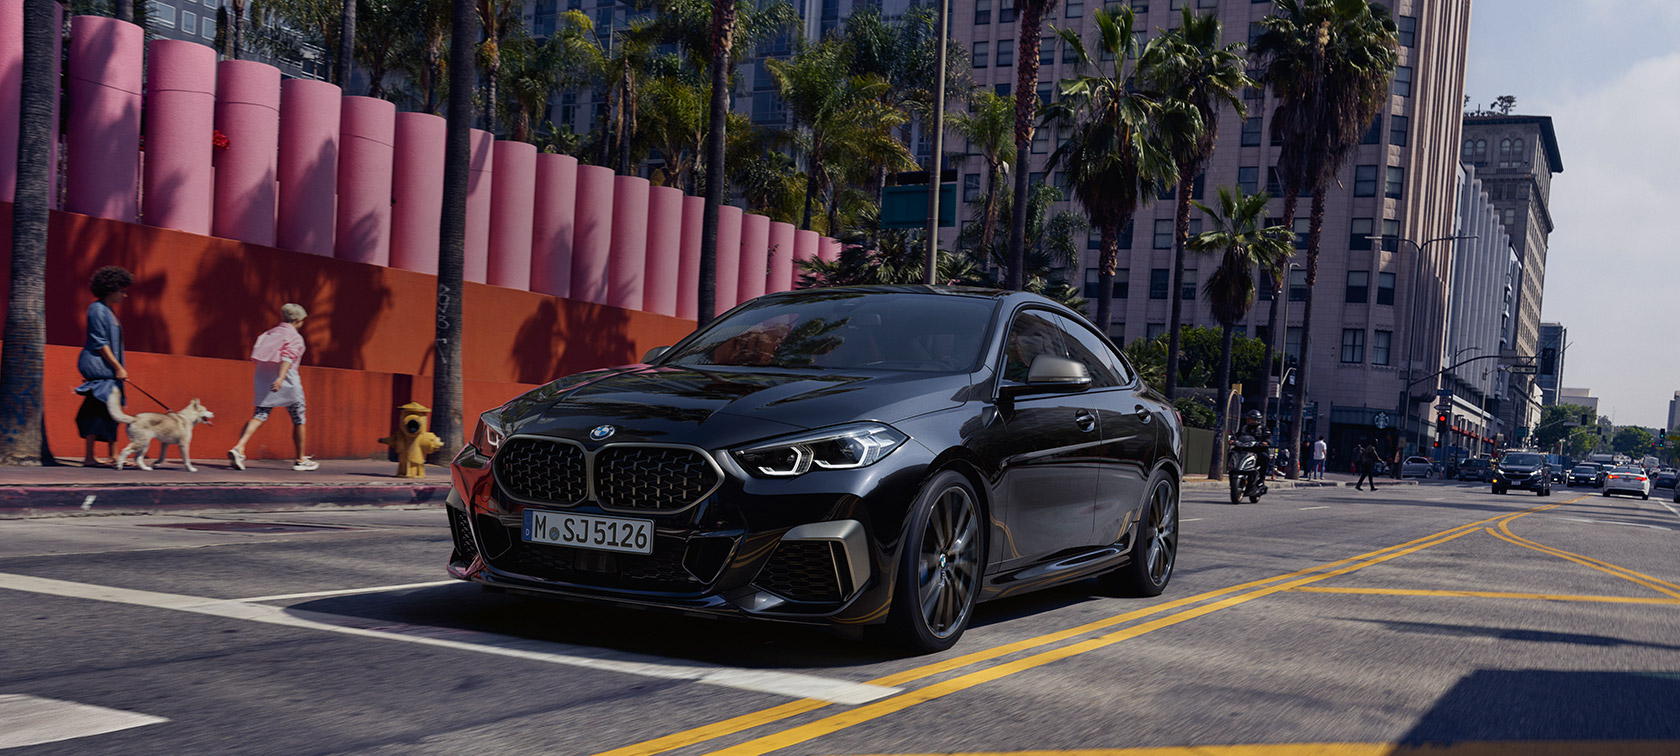 BMW M235i xDrive Gran Coupé 2020 Black Sapphire metallic F44 three-quarter front view